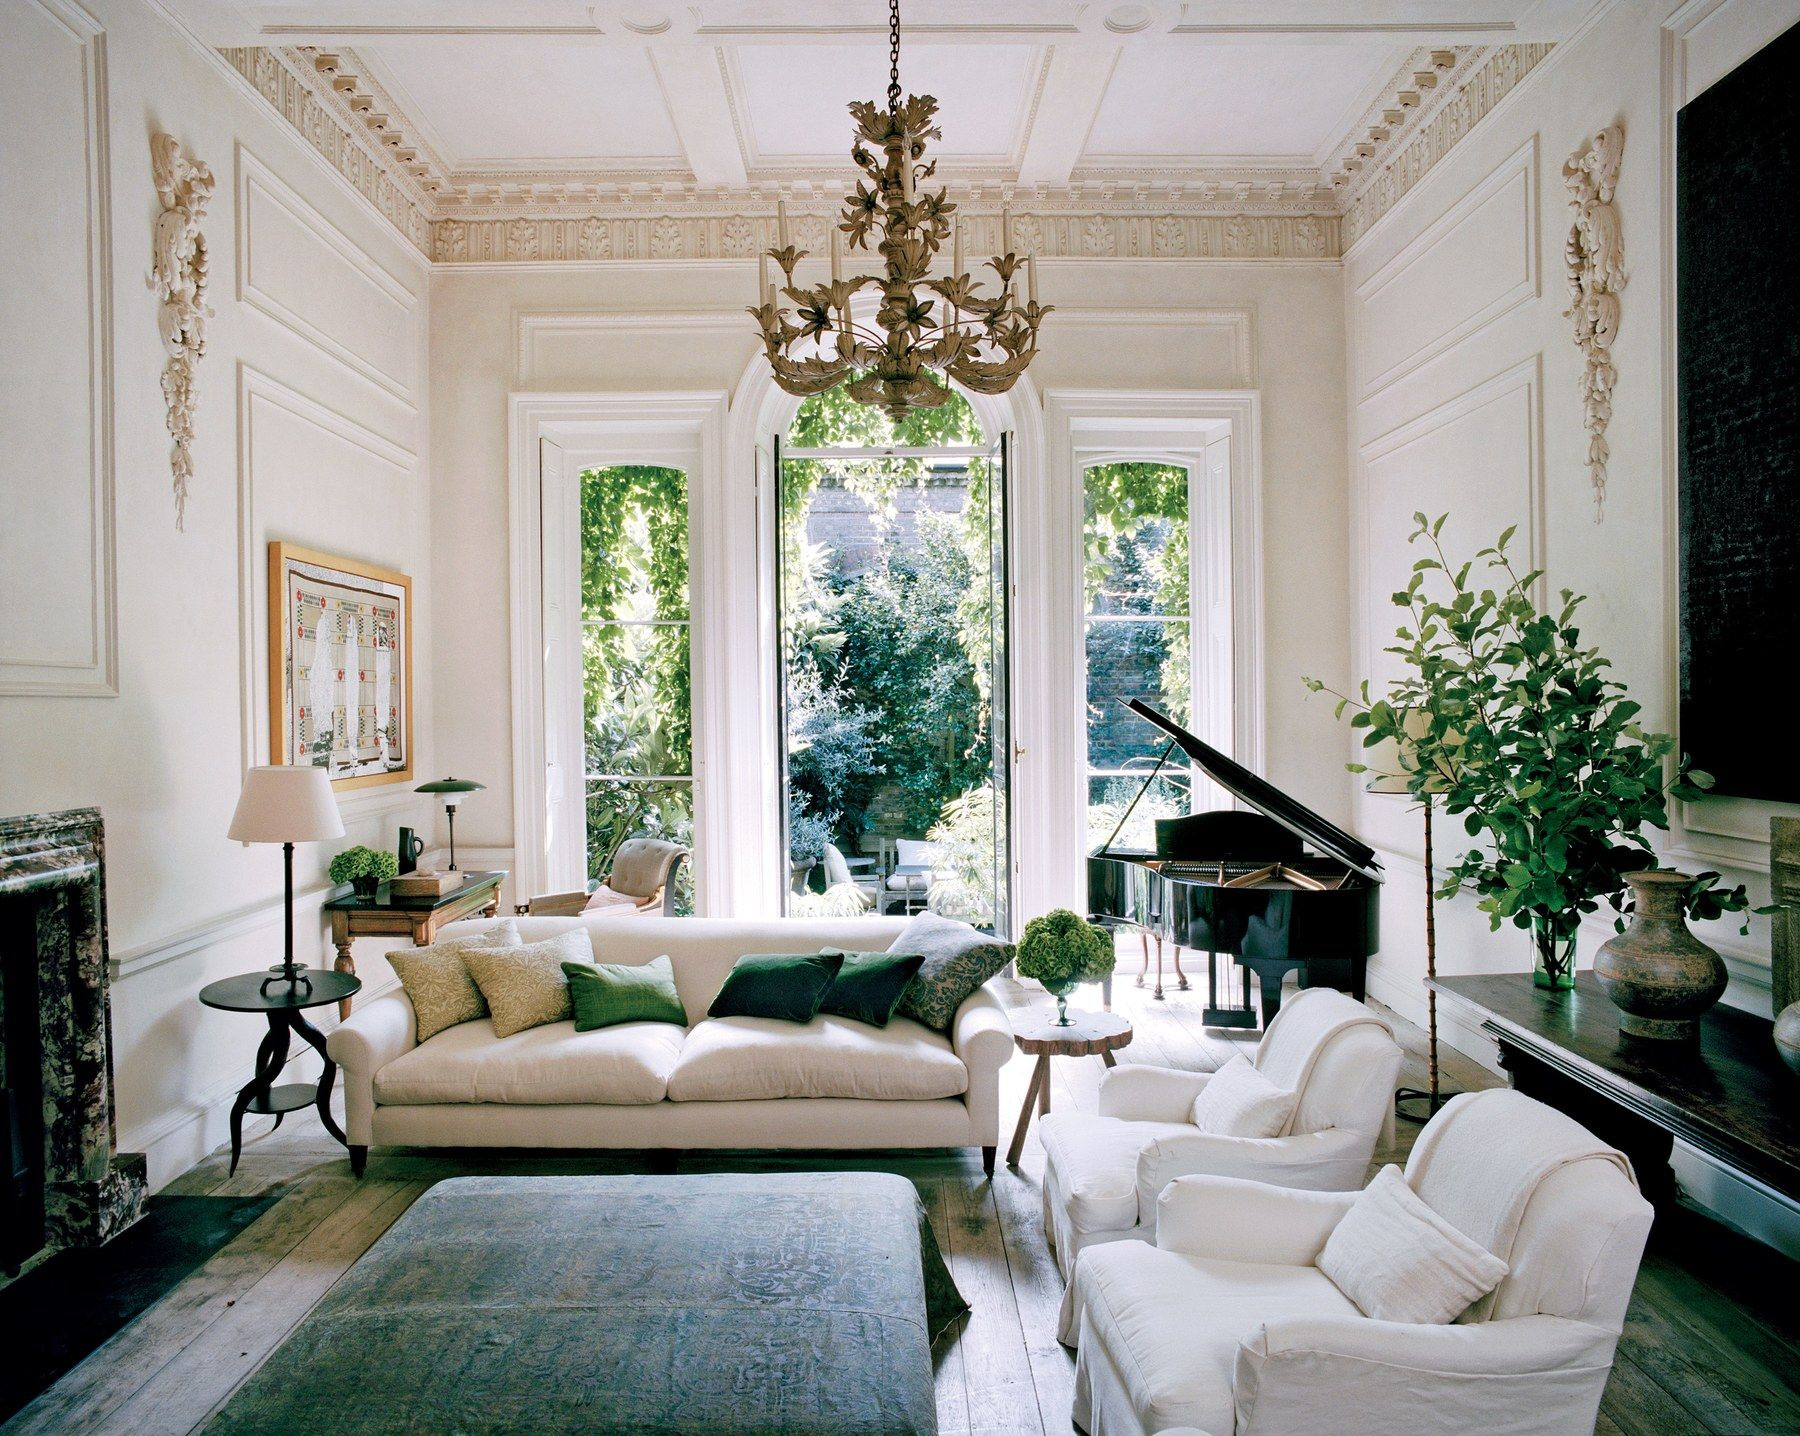 Victoria Beckham S Interior Designer Rose Uniacke S London Home